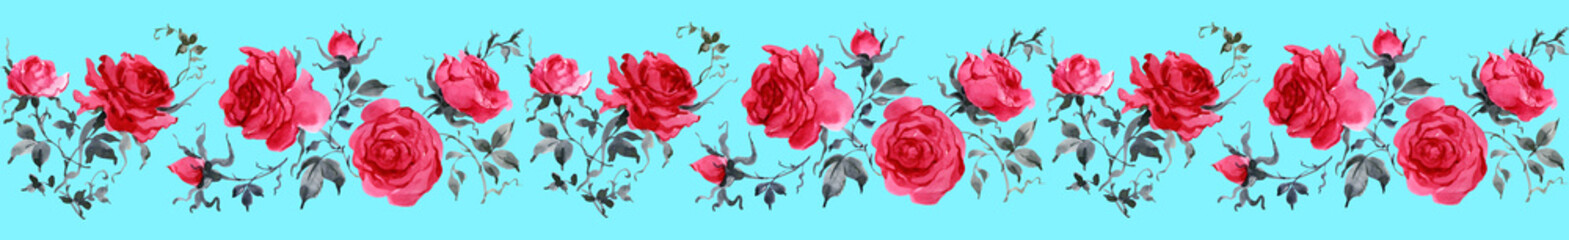 Watercolor Roses seamless border virginia-2